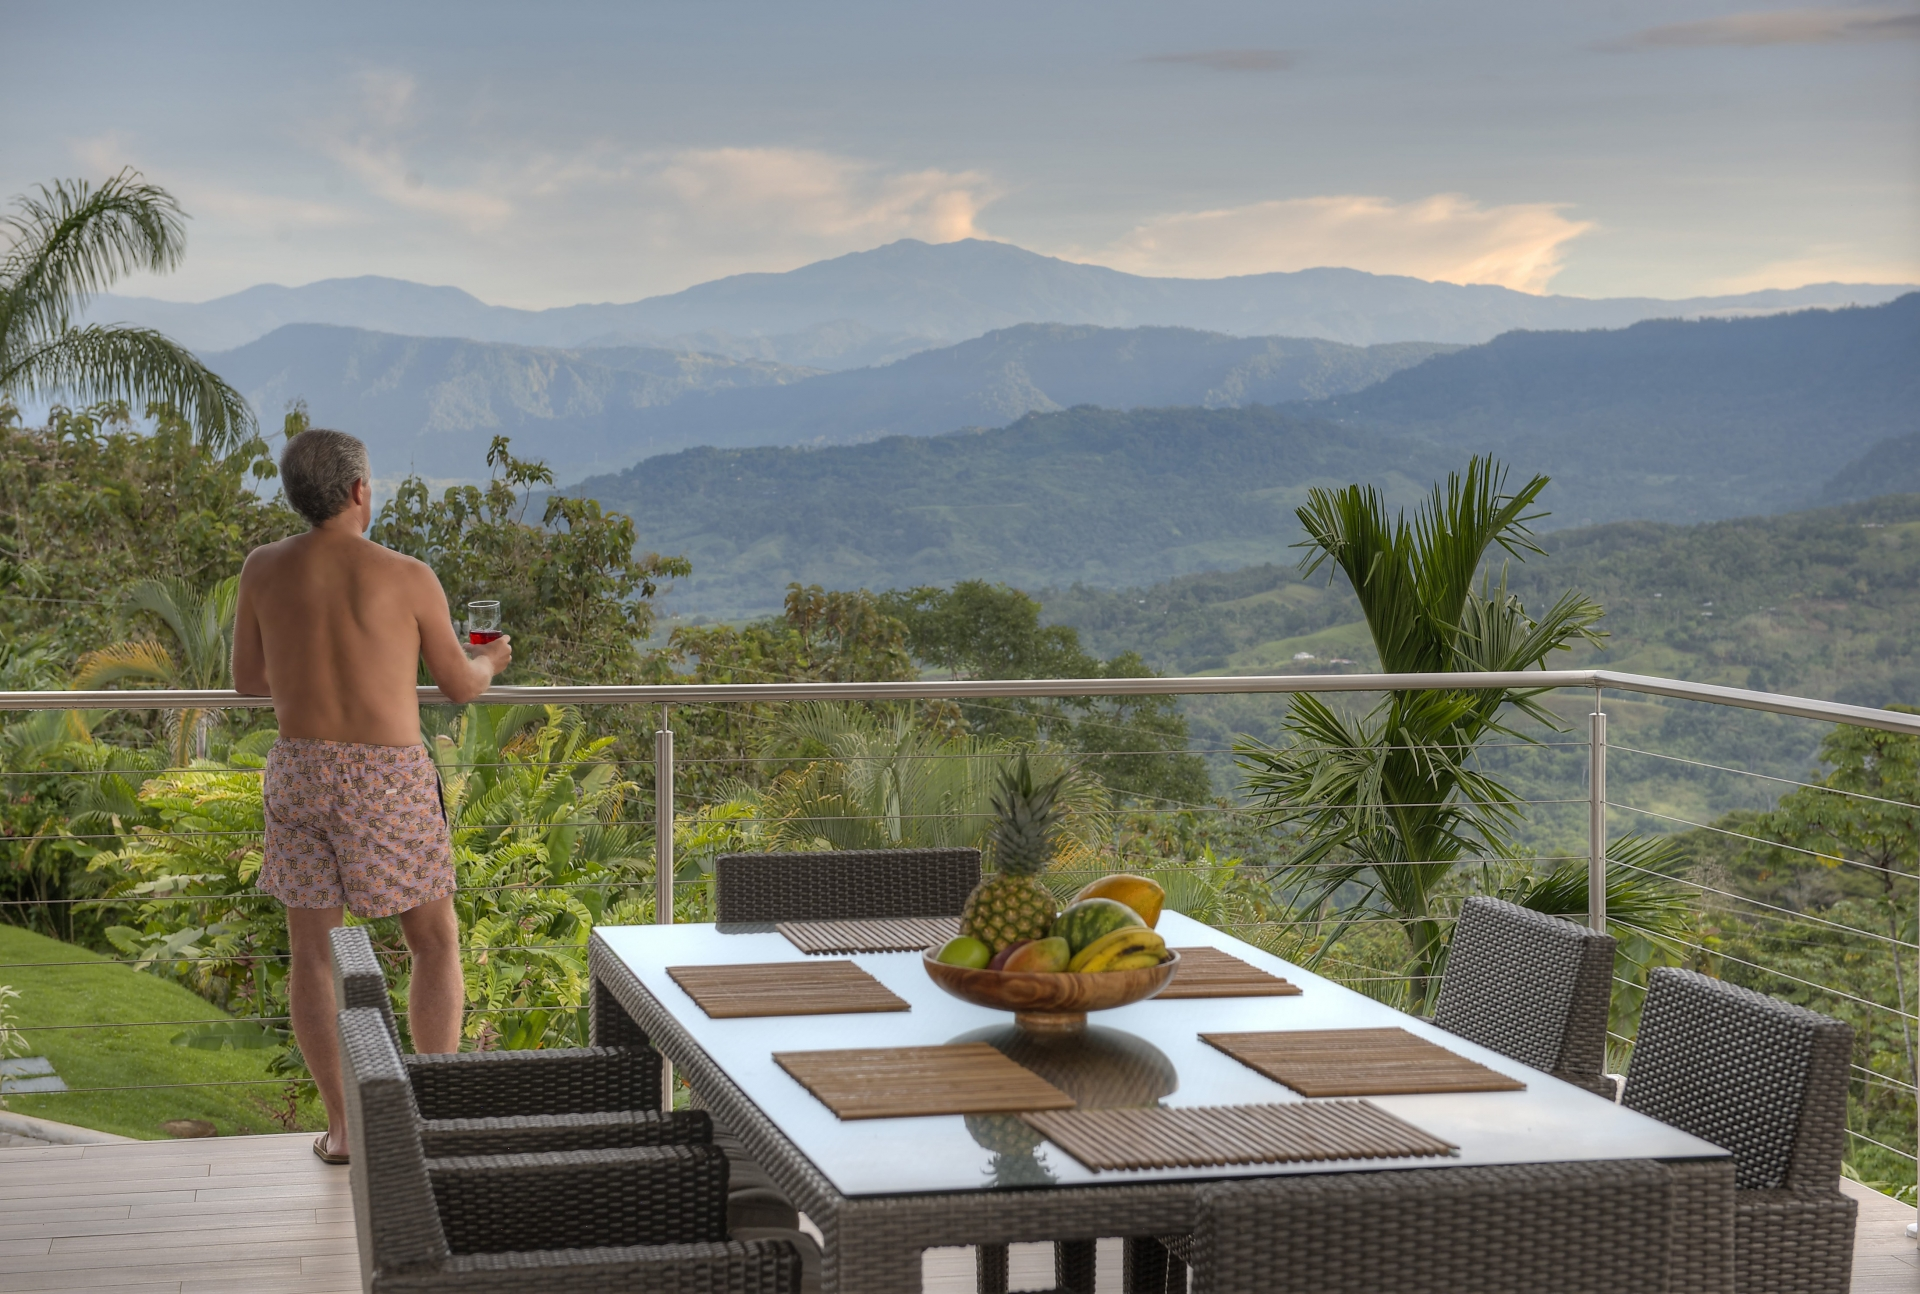 sierra collection real estate properties by axiom costa rica